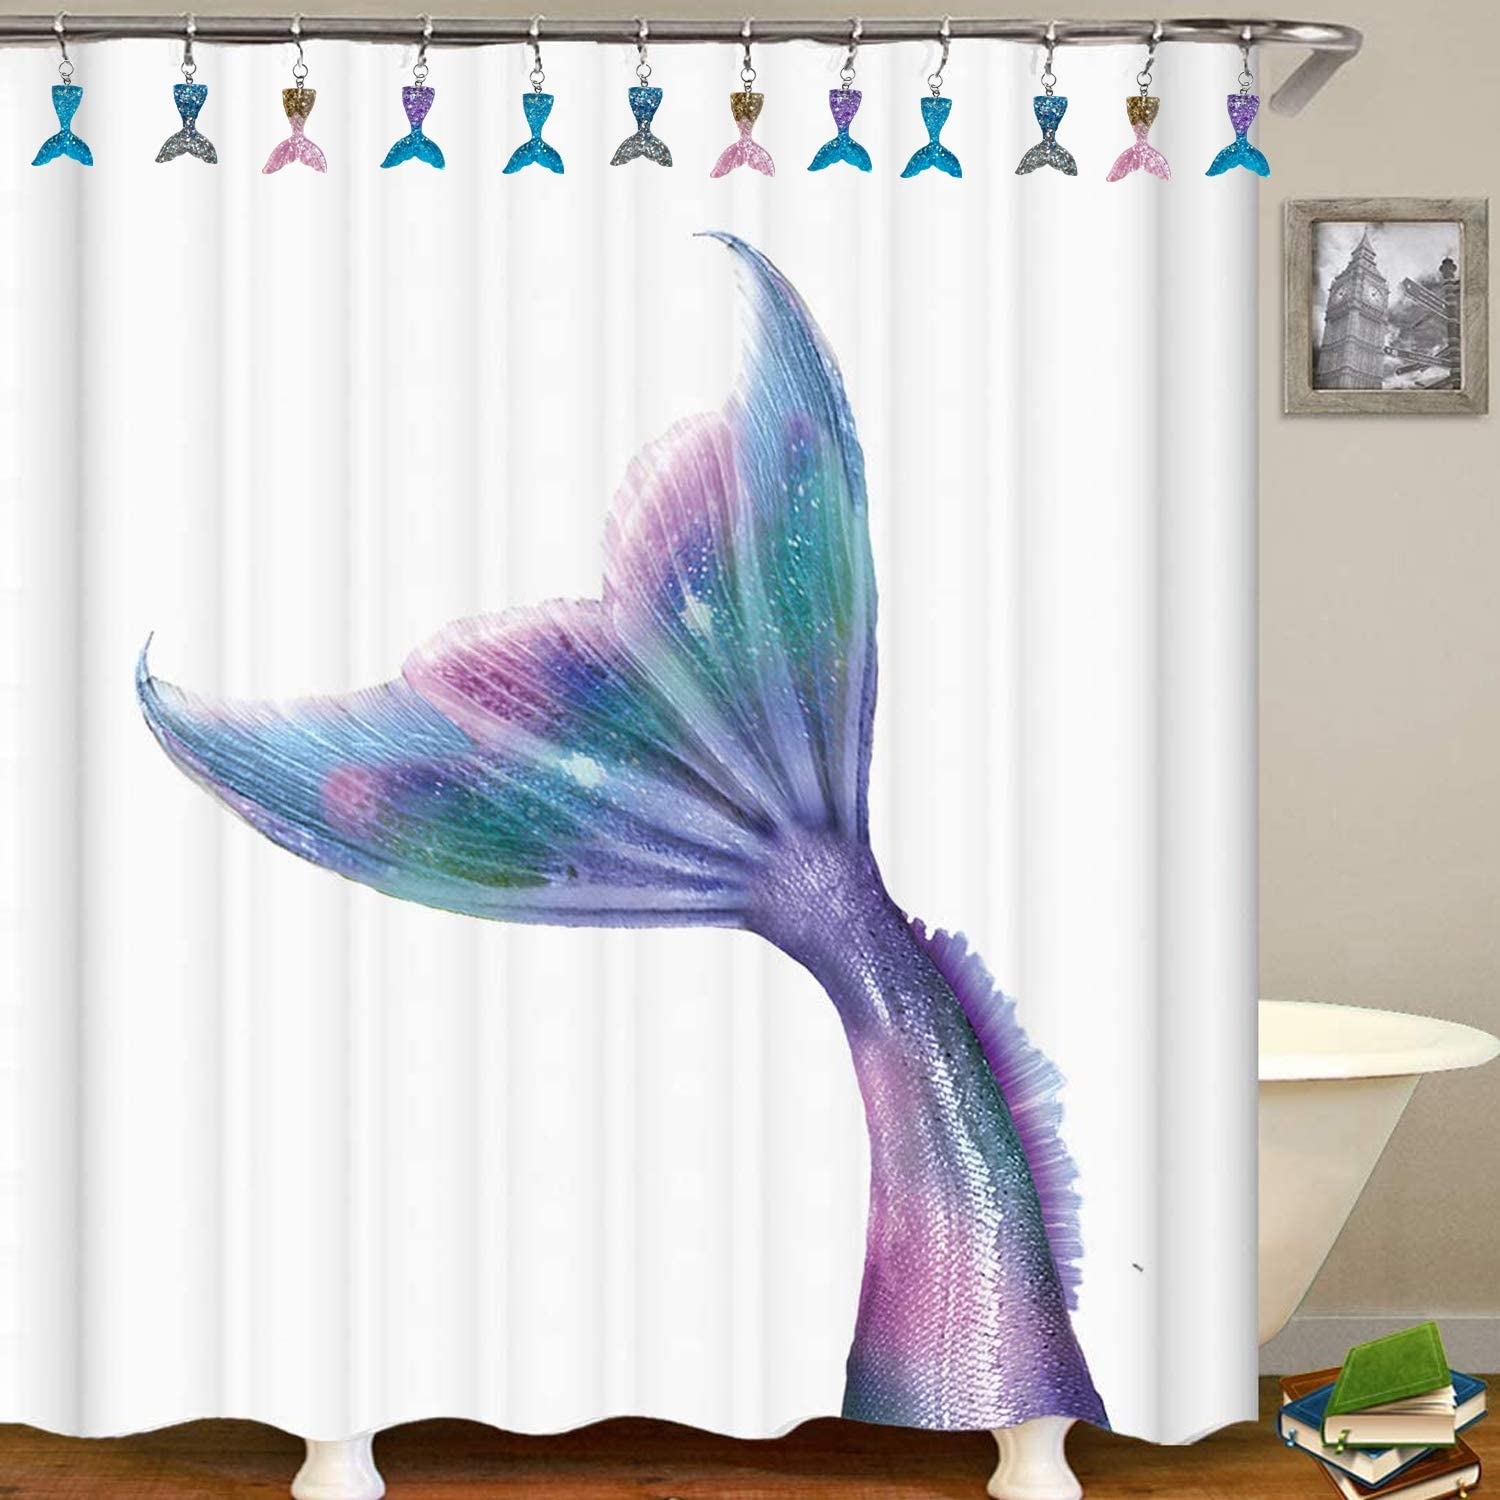 Stainless Steel Rings with Roller Balls ZILucky Set of 12 Mermaid Tail Shower Curtain Hooks Colorful Wide Whale Fish Tail Home Bathroom Decor Accessories